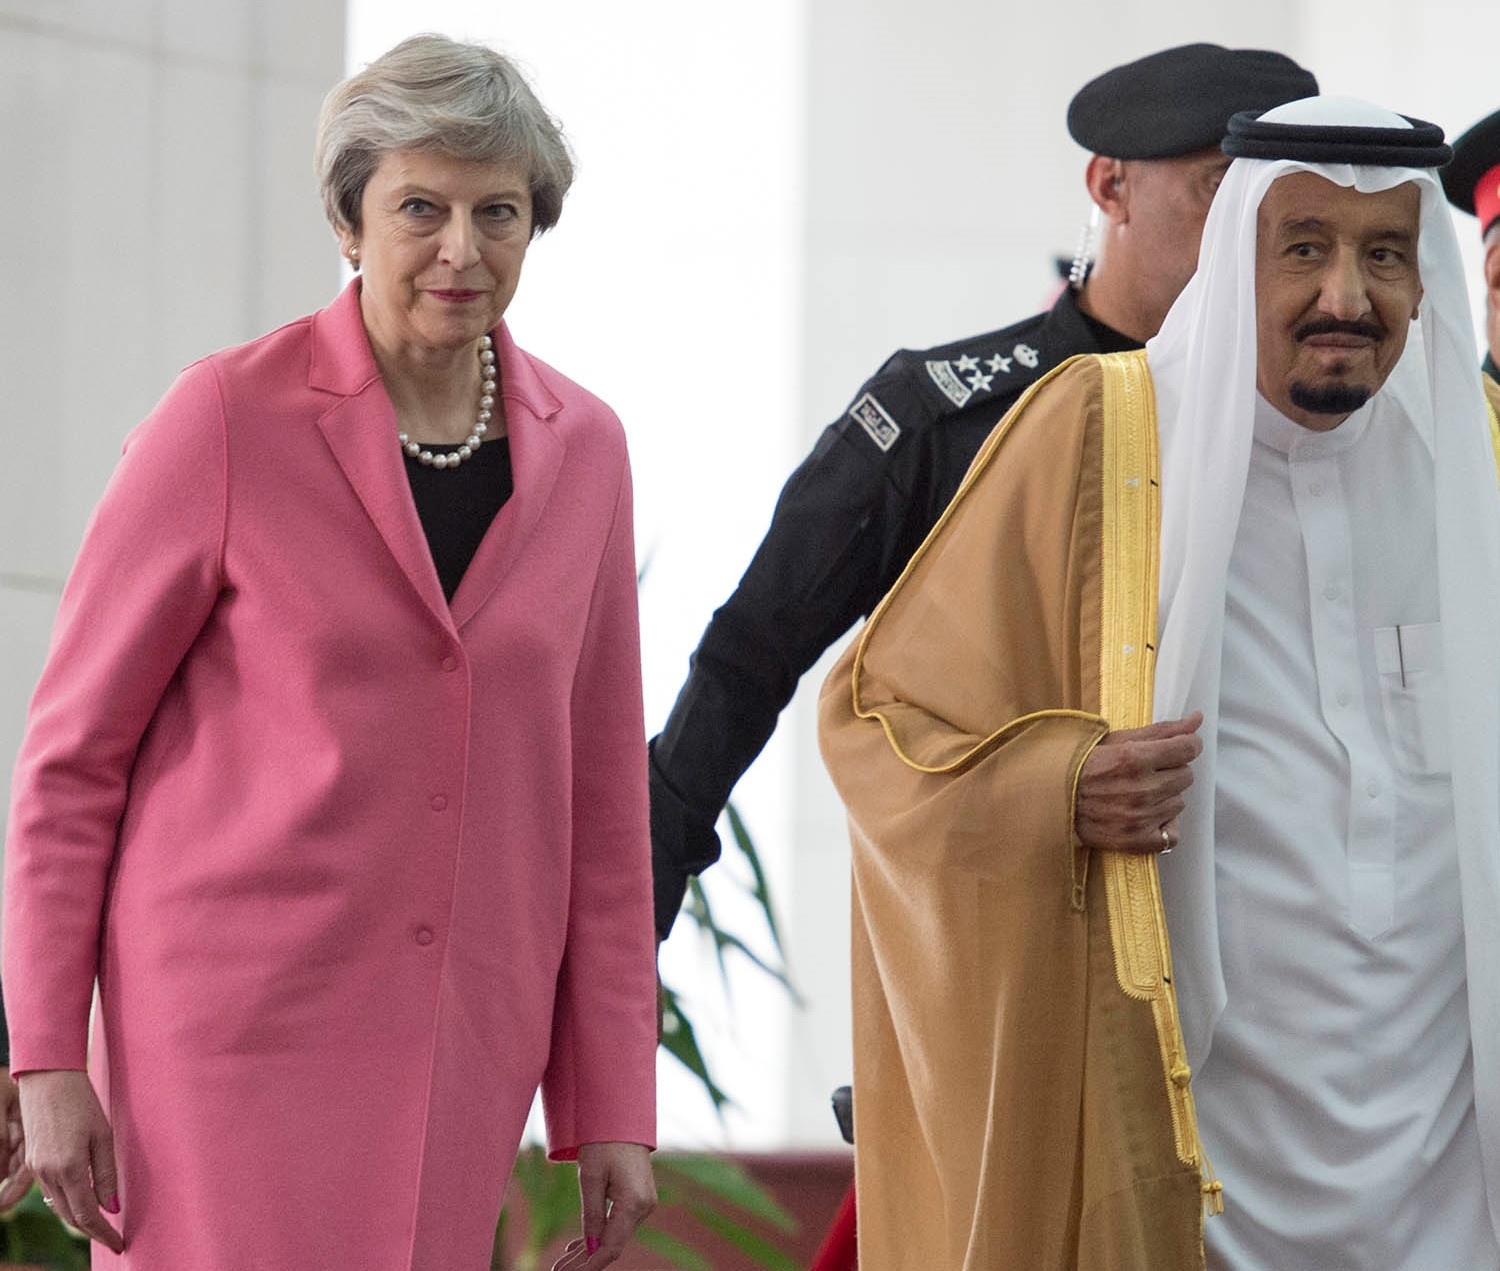 April 5, 2017 shows Saudi Arabia's King Salman bin Abdulaziz al-Saud receiving British Prime Minister Theresa May in the capital Riyadh.